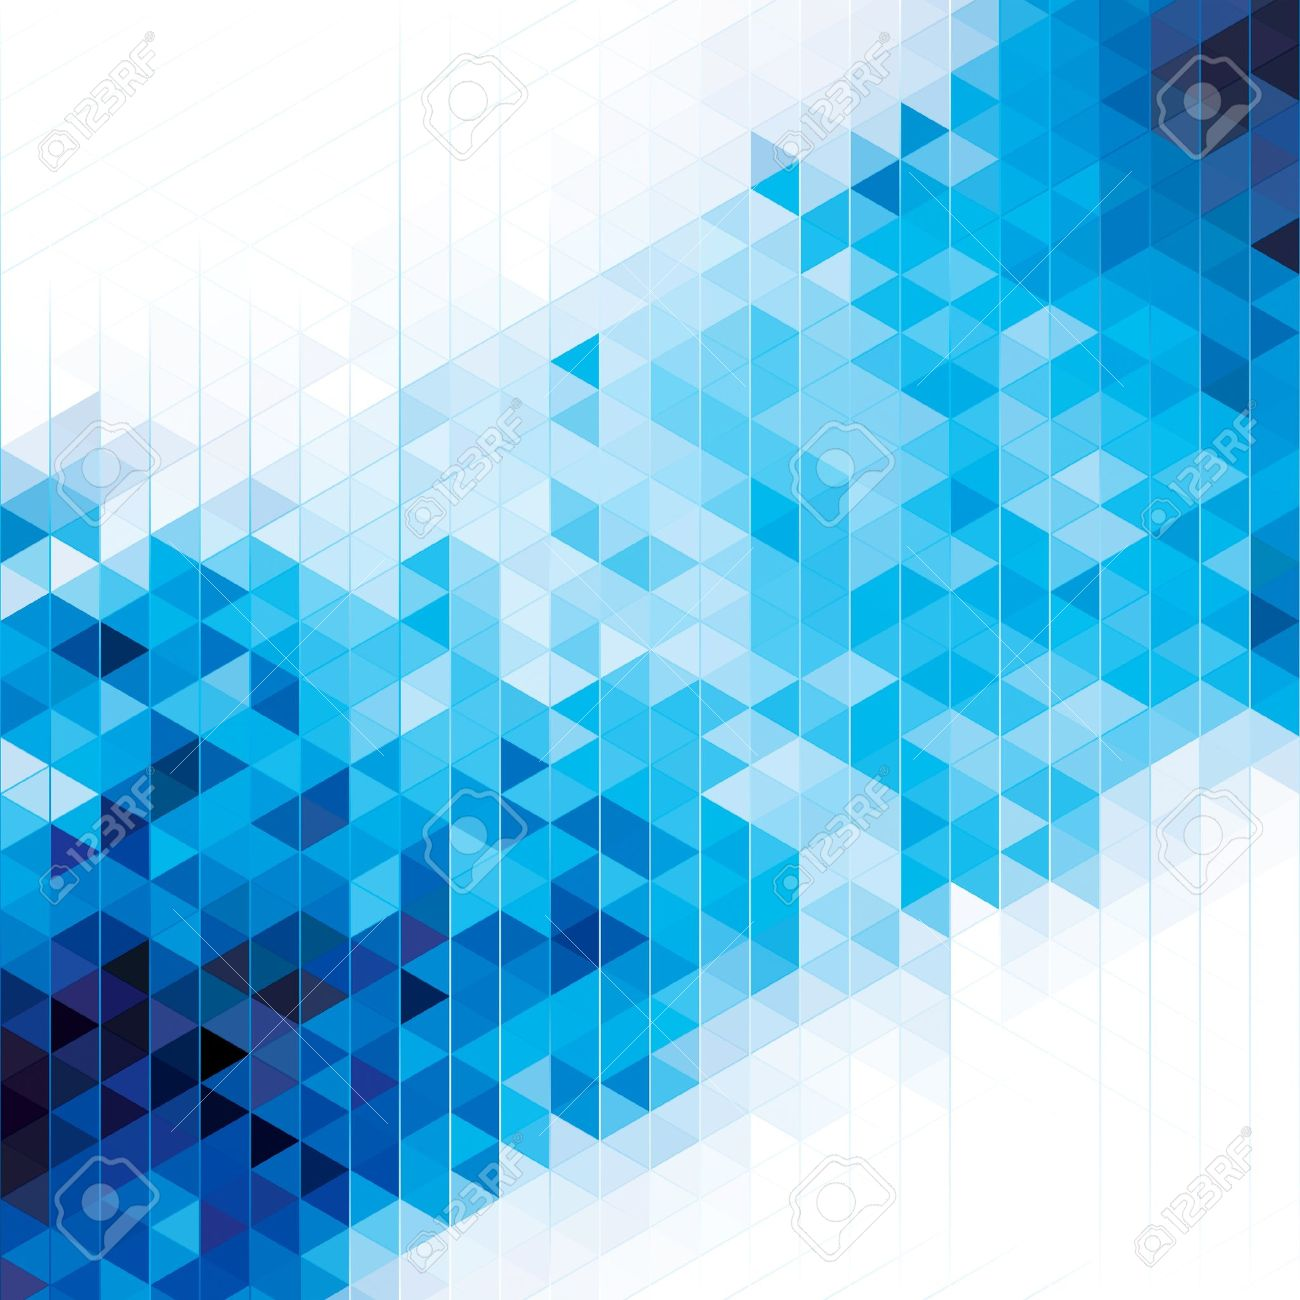 Abstract modern geometric blue background - 20779937